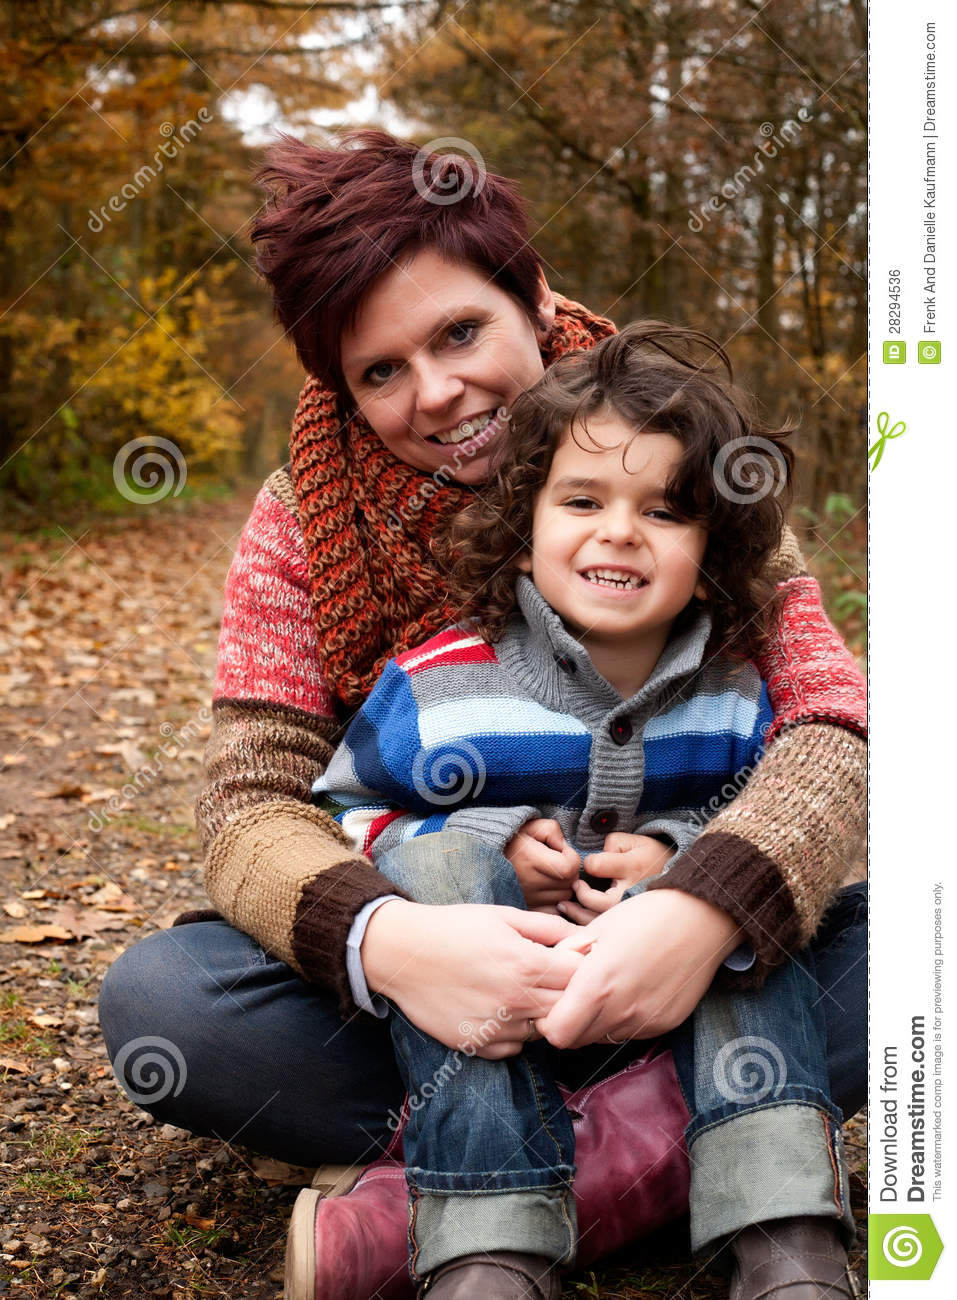 Mothe and her son